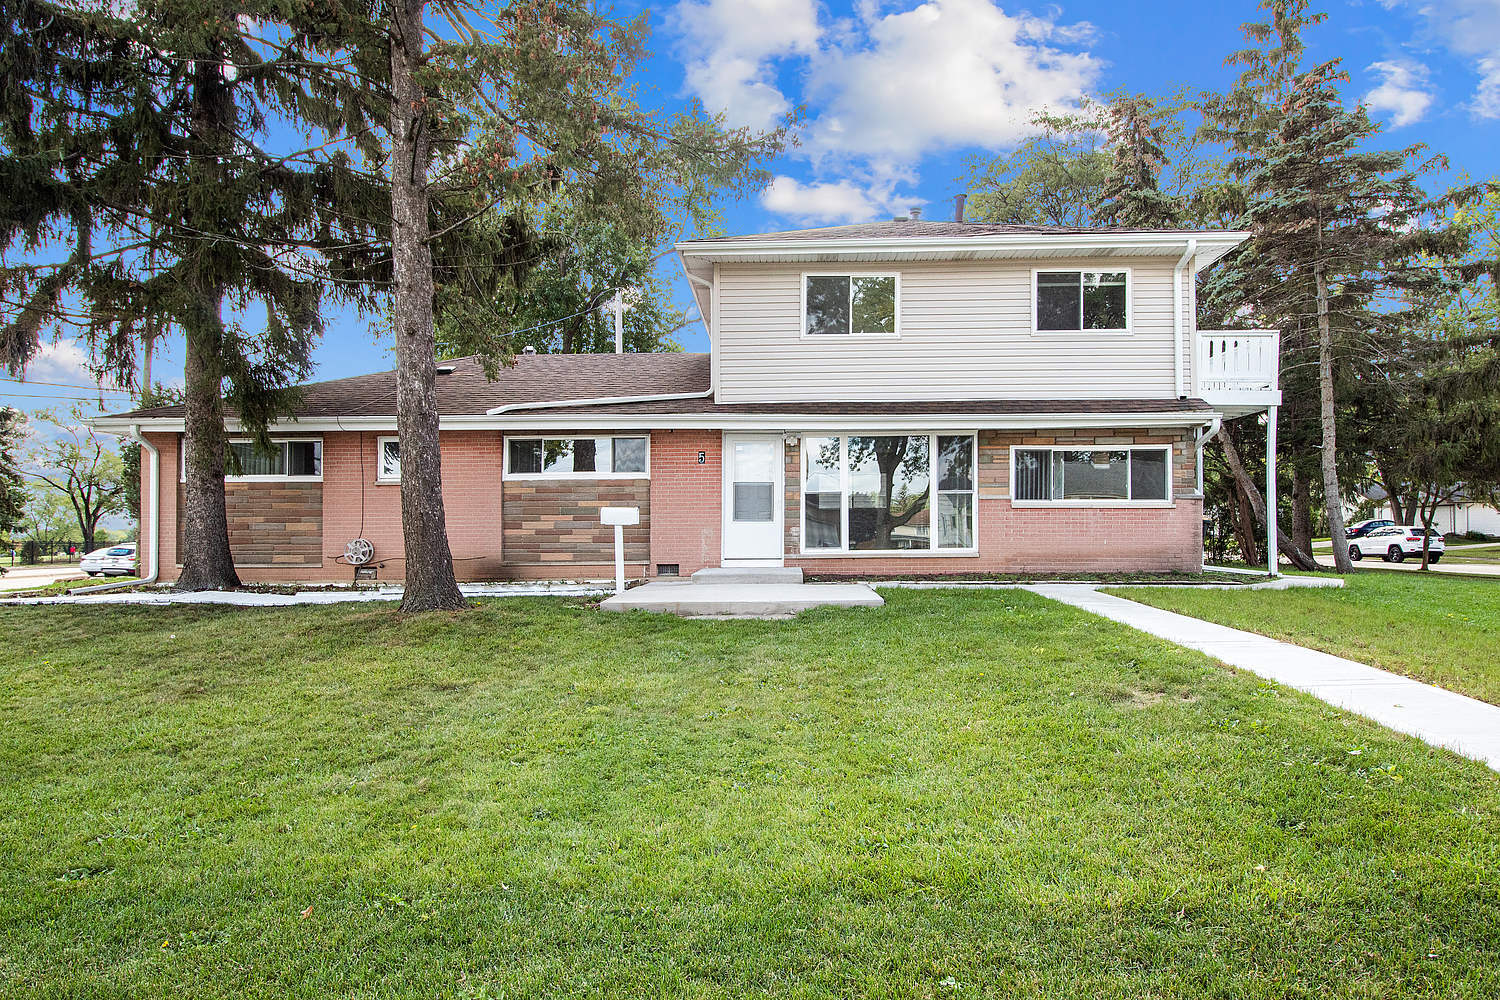 Beautiful renovated Single Family House with 5 bedrooms and 3 bathrooms, This home features refinished hardwood floors, a unique floor plan, attached 2-car garage with new concrete floor, new six panels doors, new kitchen cabinets, all appliances stay, new washer and dryer, new concrete driveway, new windows, Large corner lot, remodeled second floor bathroom, 2 furnaces, in ground pool, to much to list. Don't missed this opportunity.